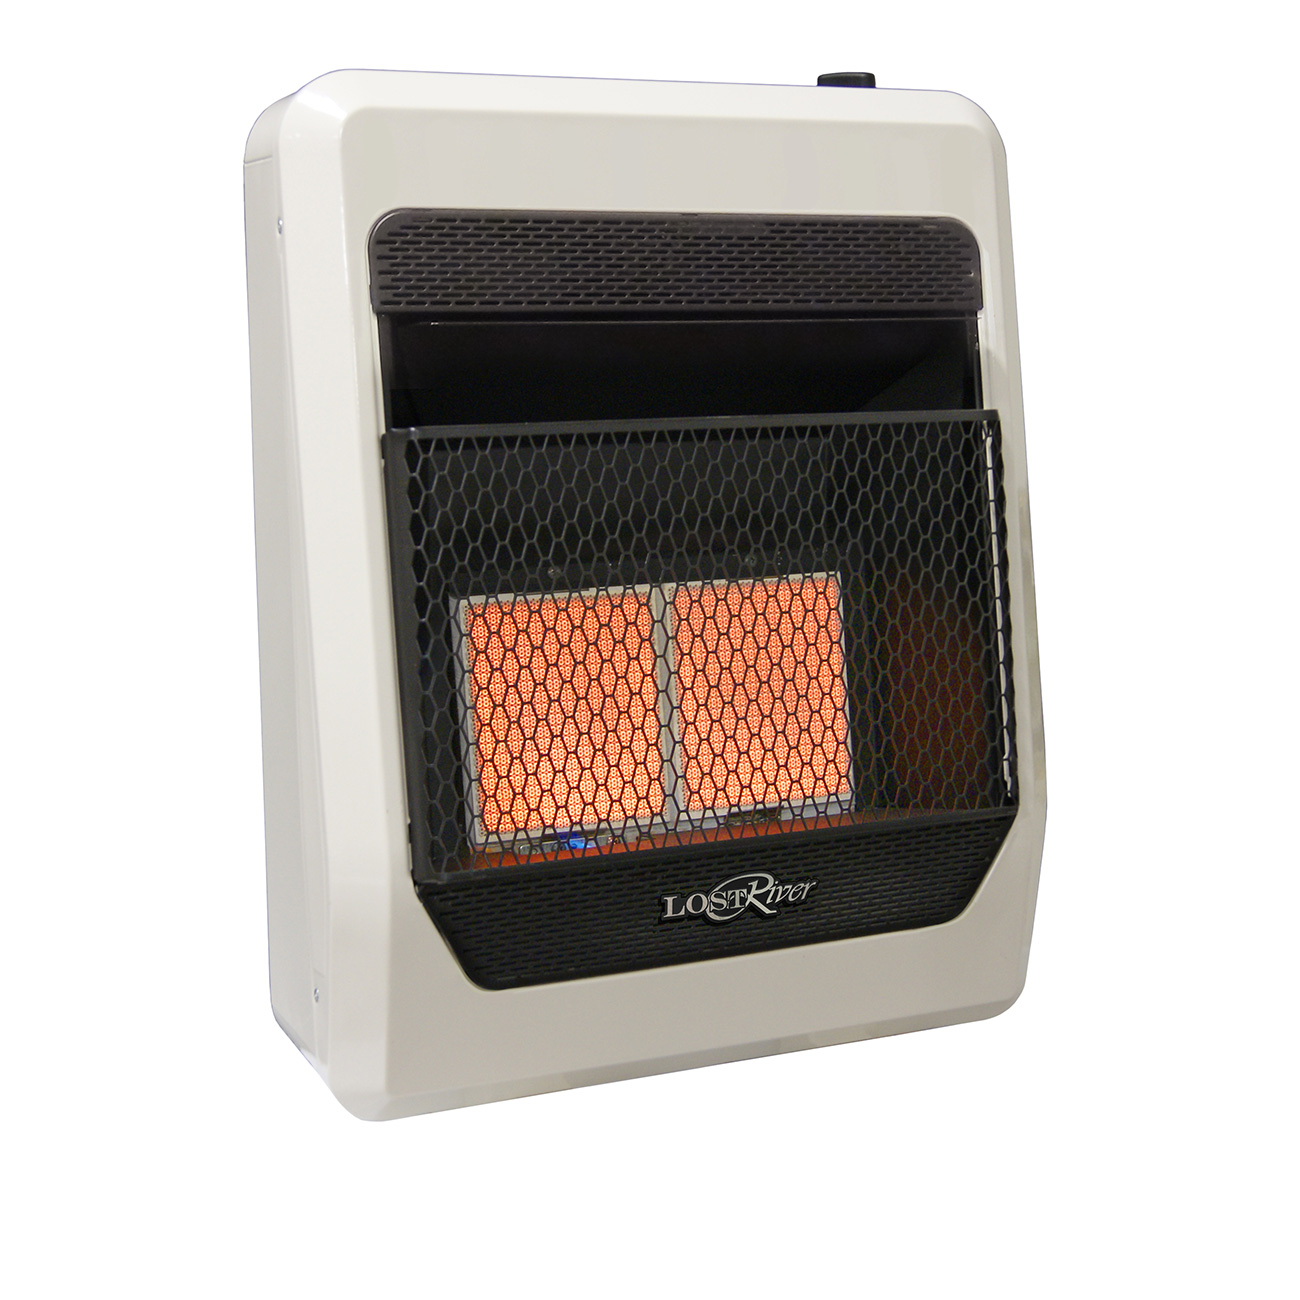 Lost River Dual Fuel Ventless Infrared Radiant Plaque